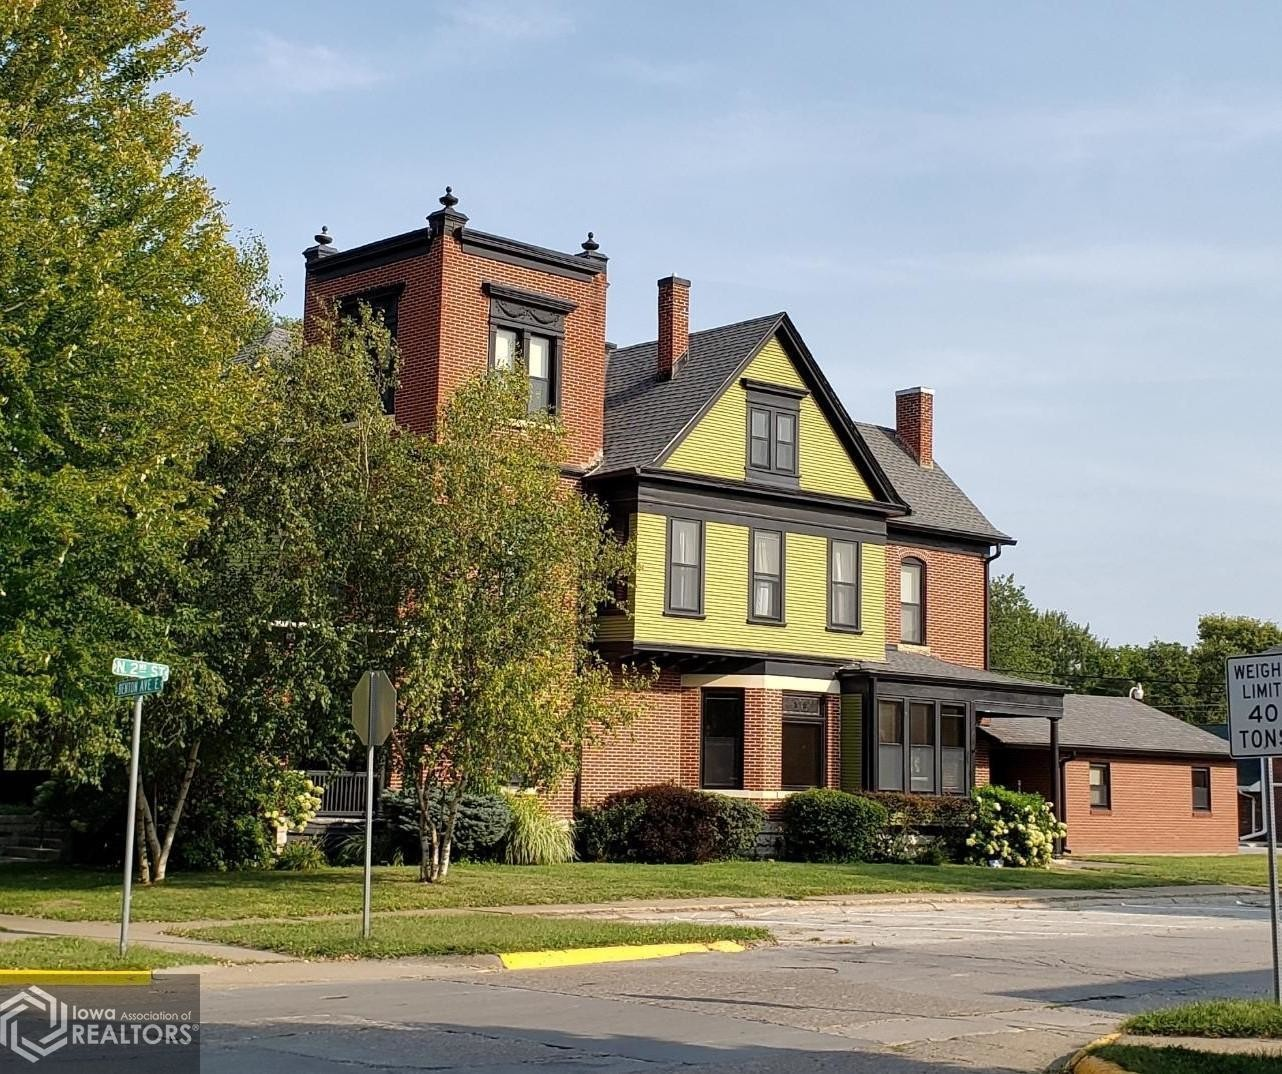 House In Albia